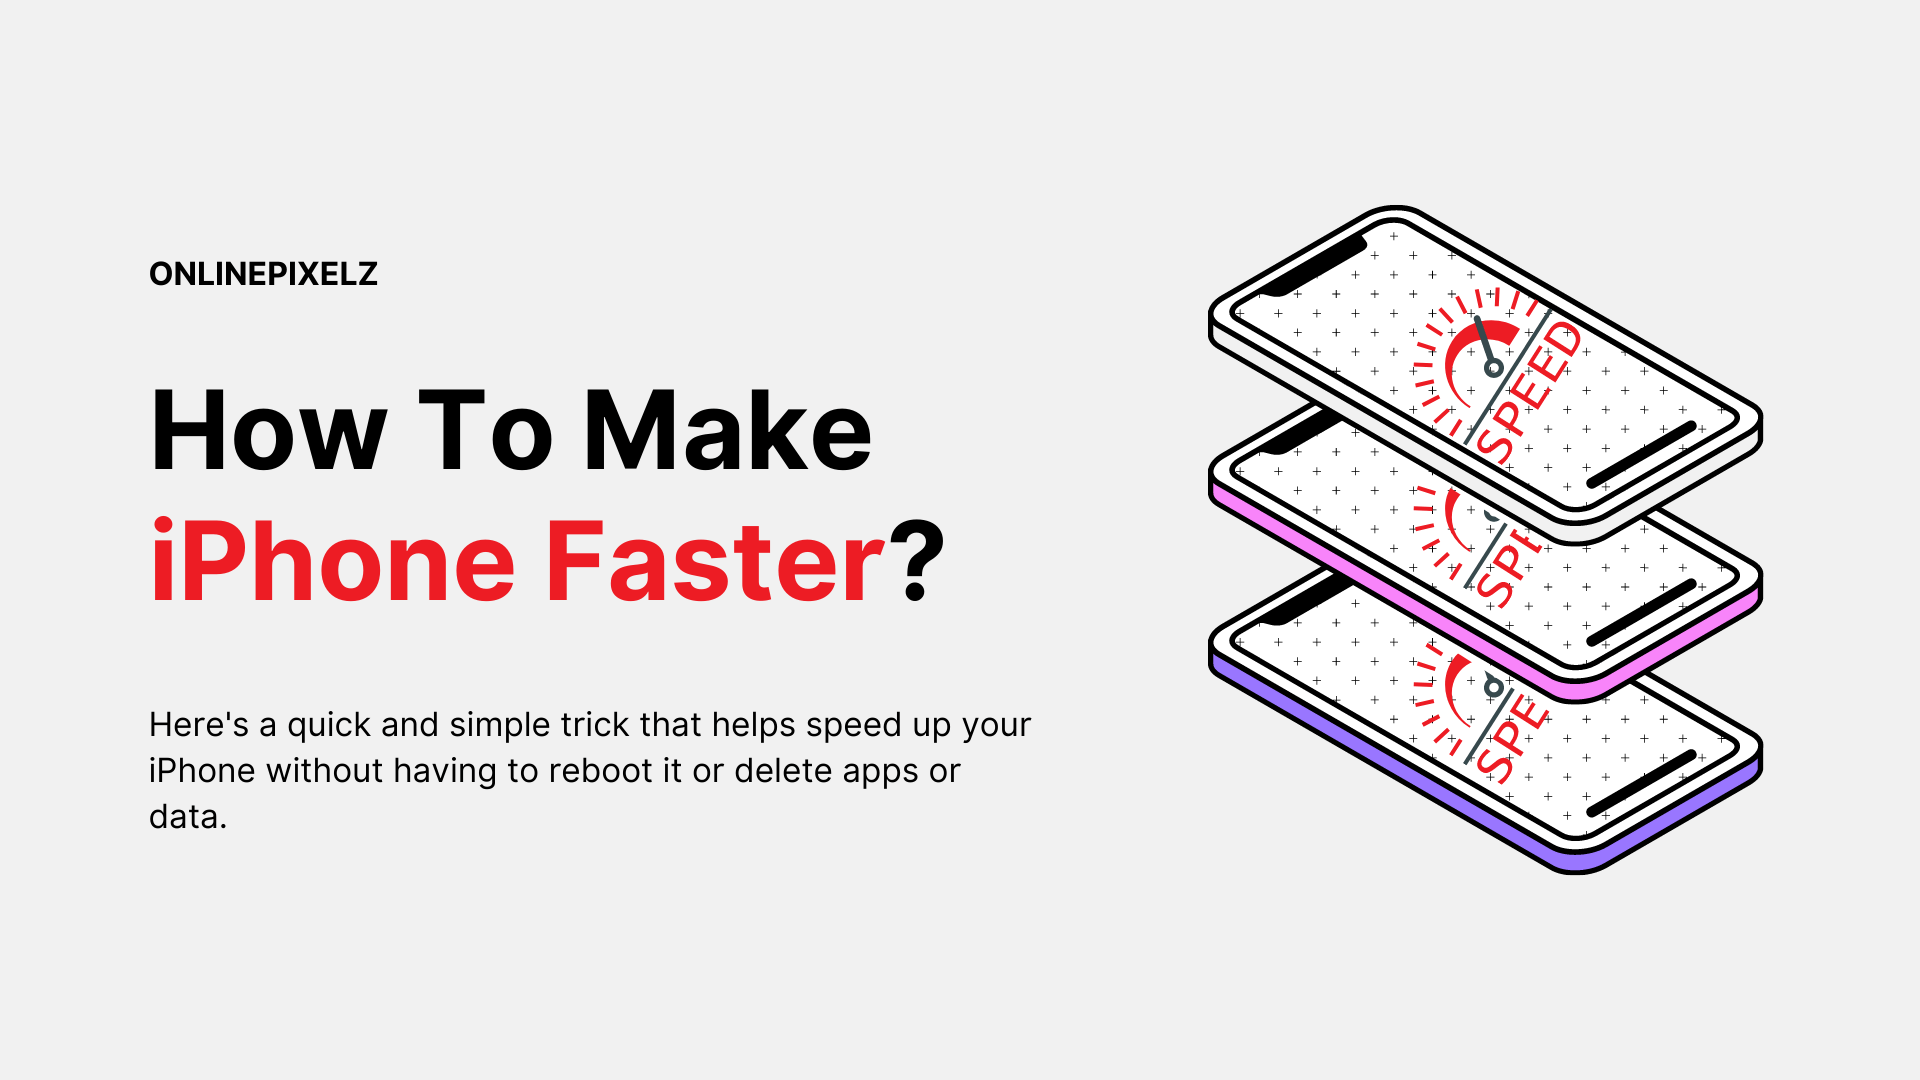 How To Make iPhone Faster